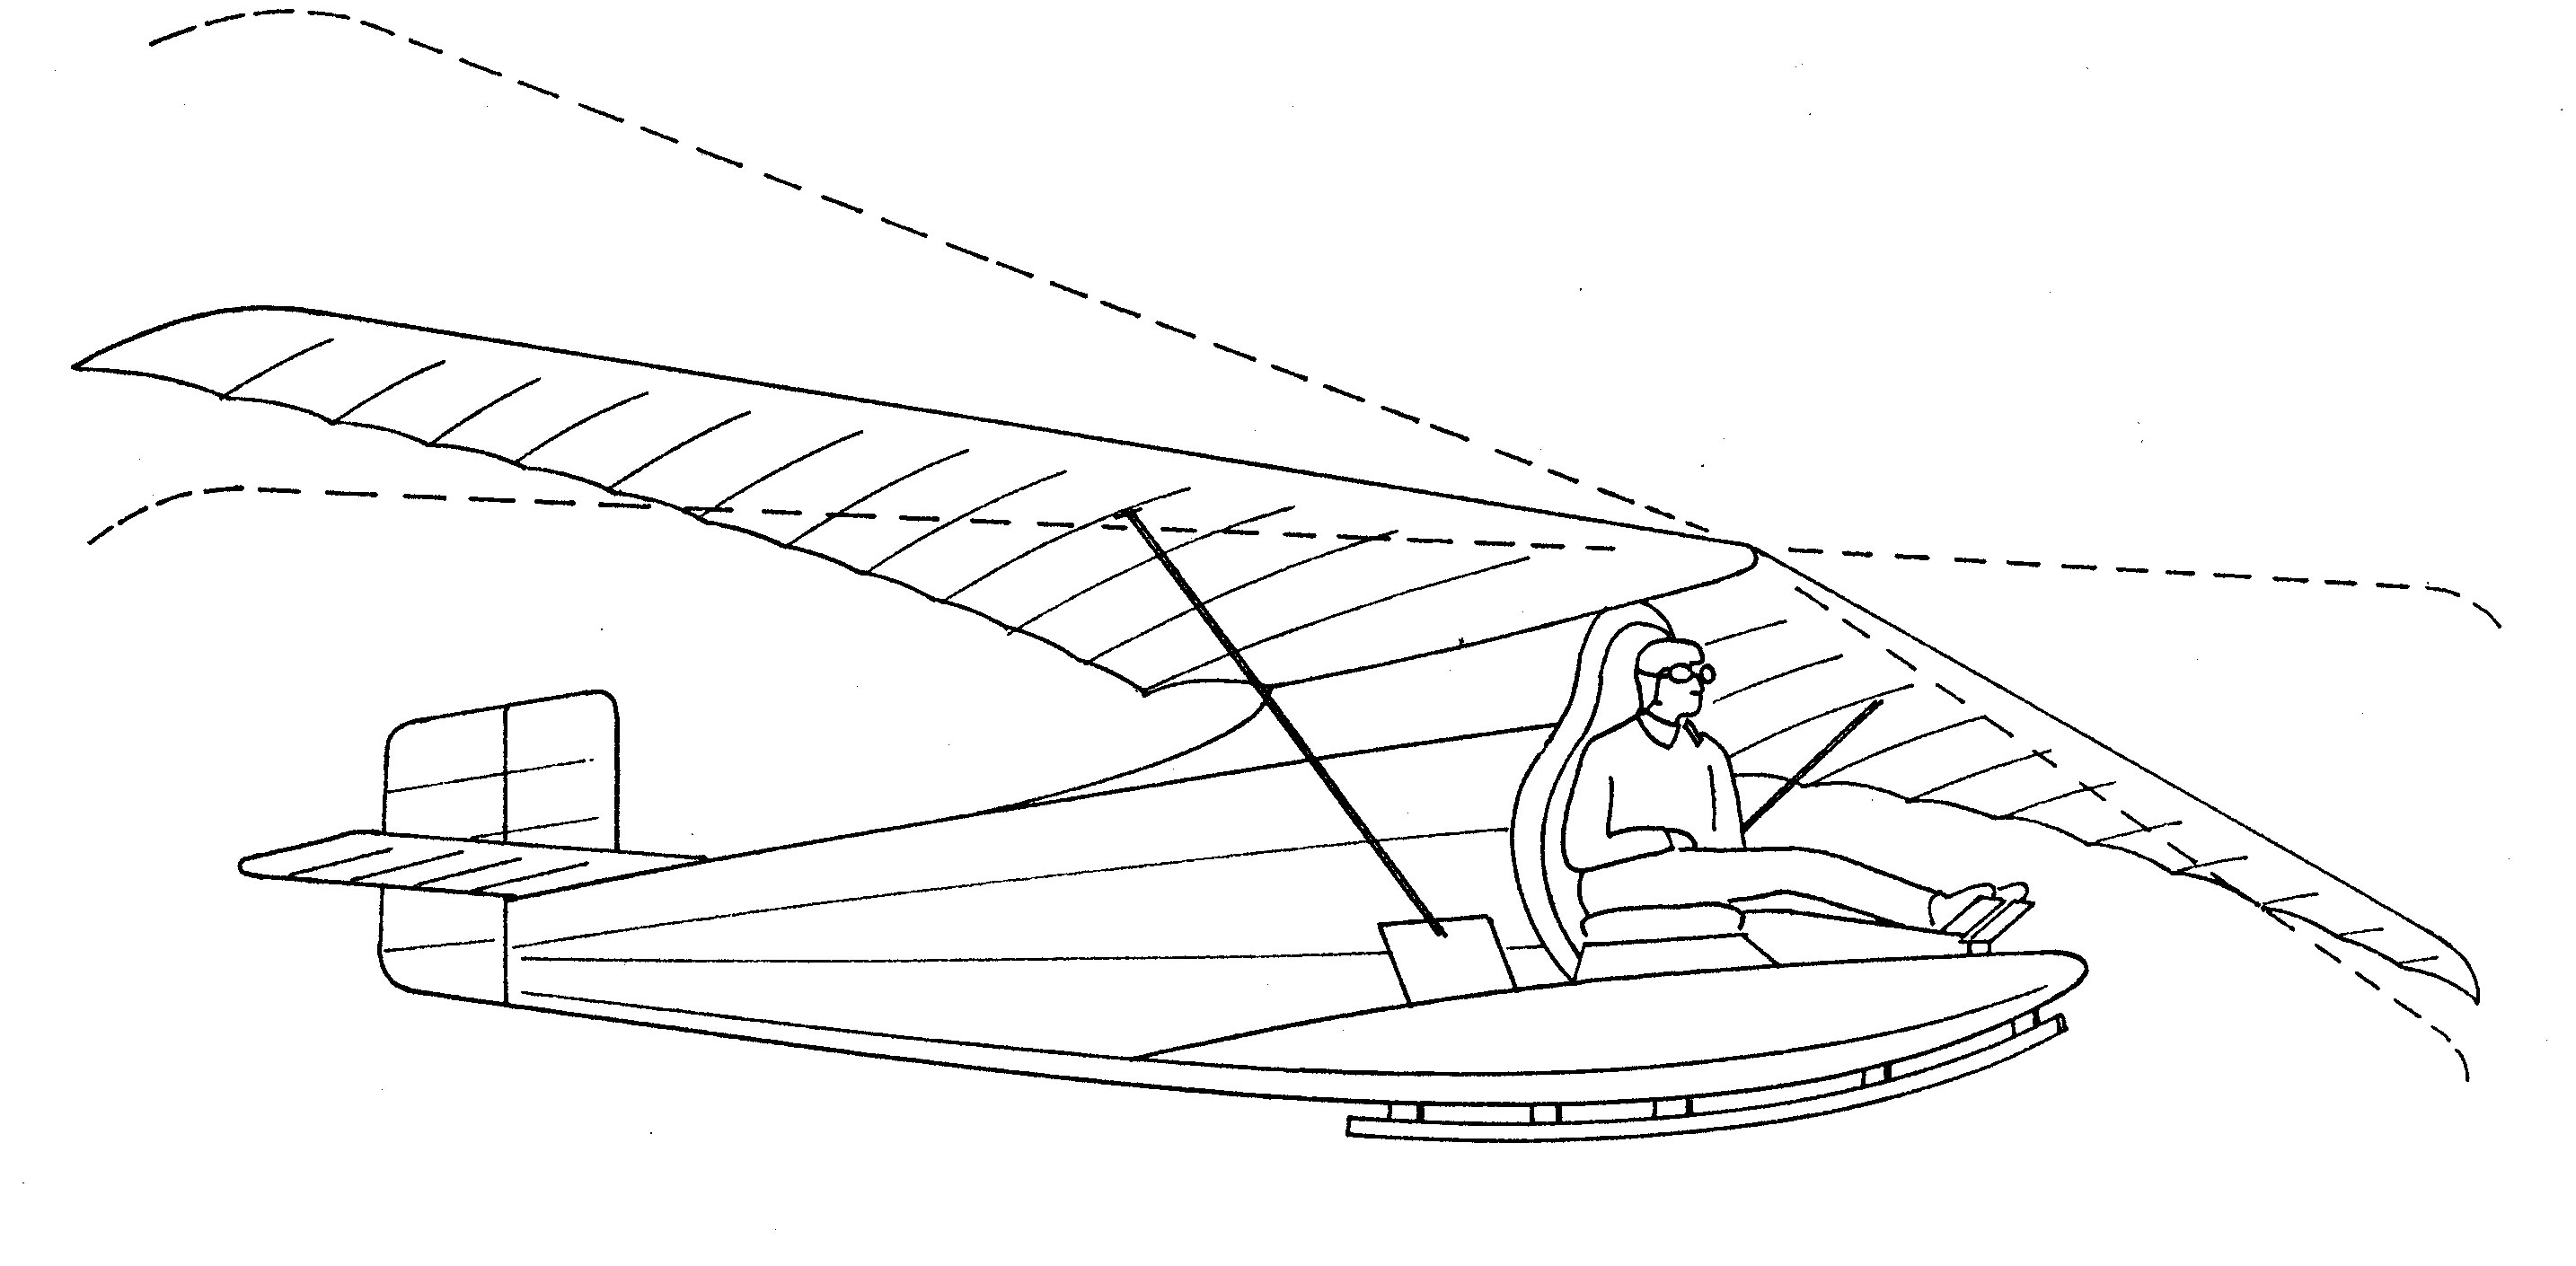 Project Ornithopter